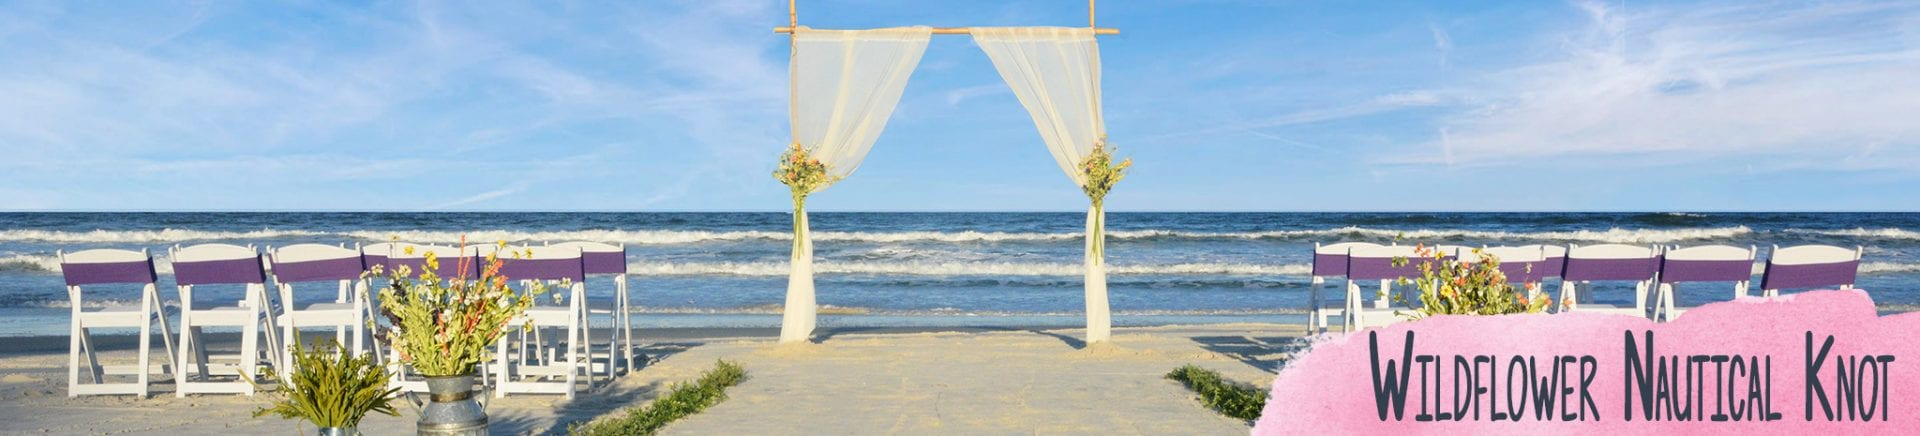 Beach wedding arch with flowers setup with chairs in Florida